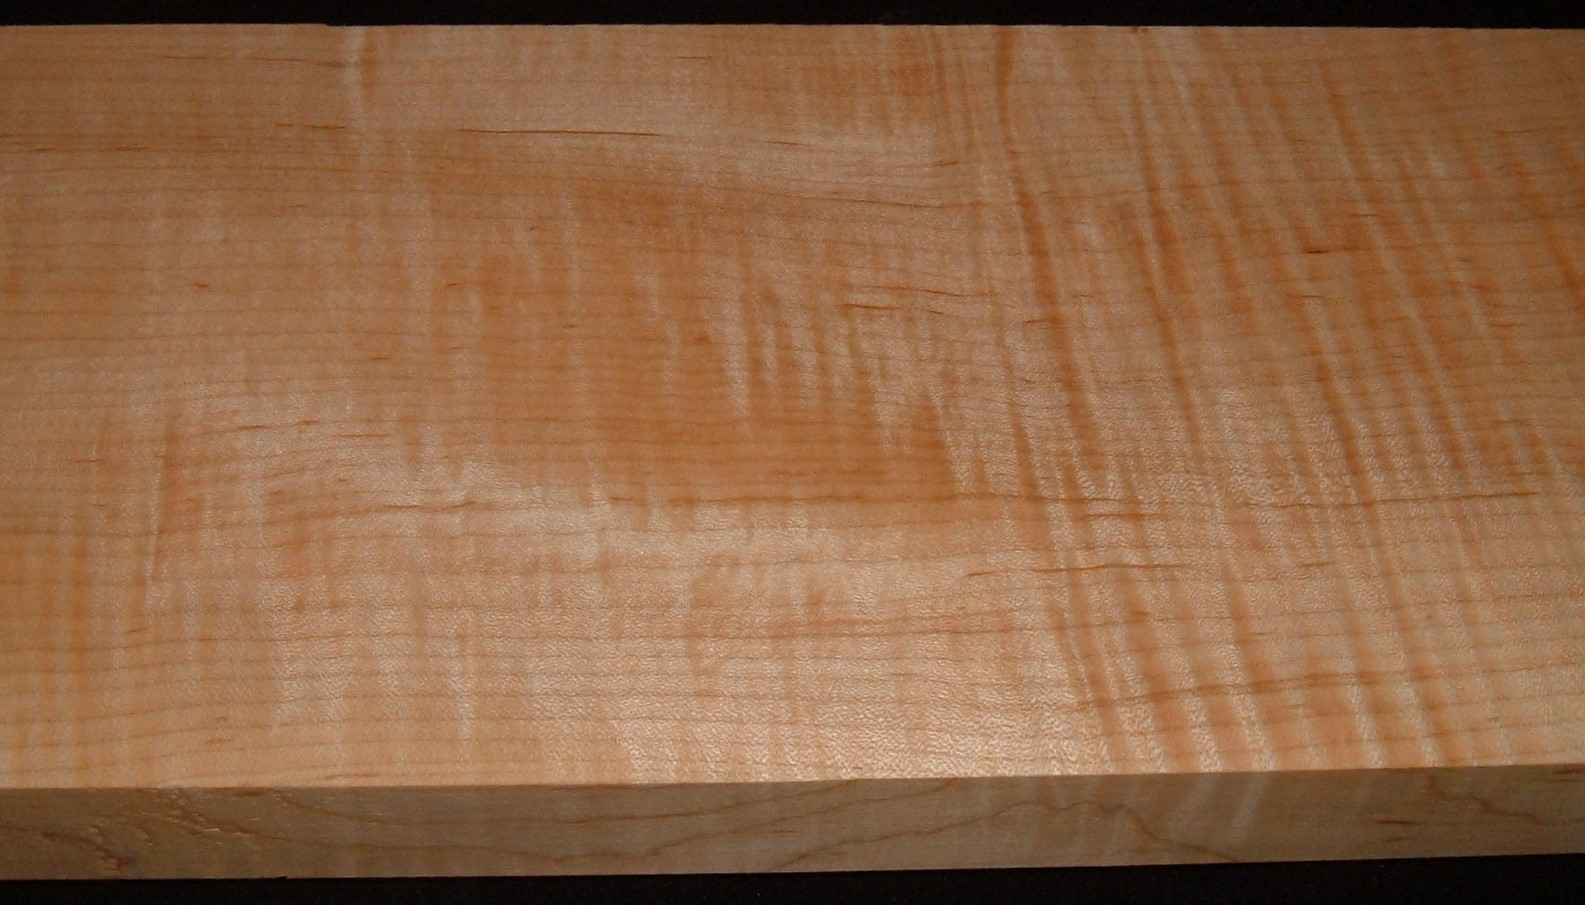 QS2104-55JK, 1-5/16x6-3/4x45, Quartersawn Curly Maple